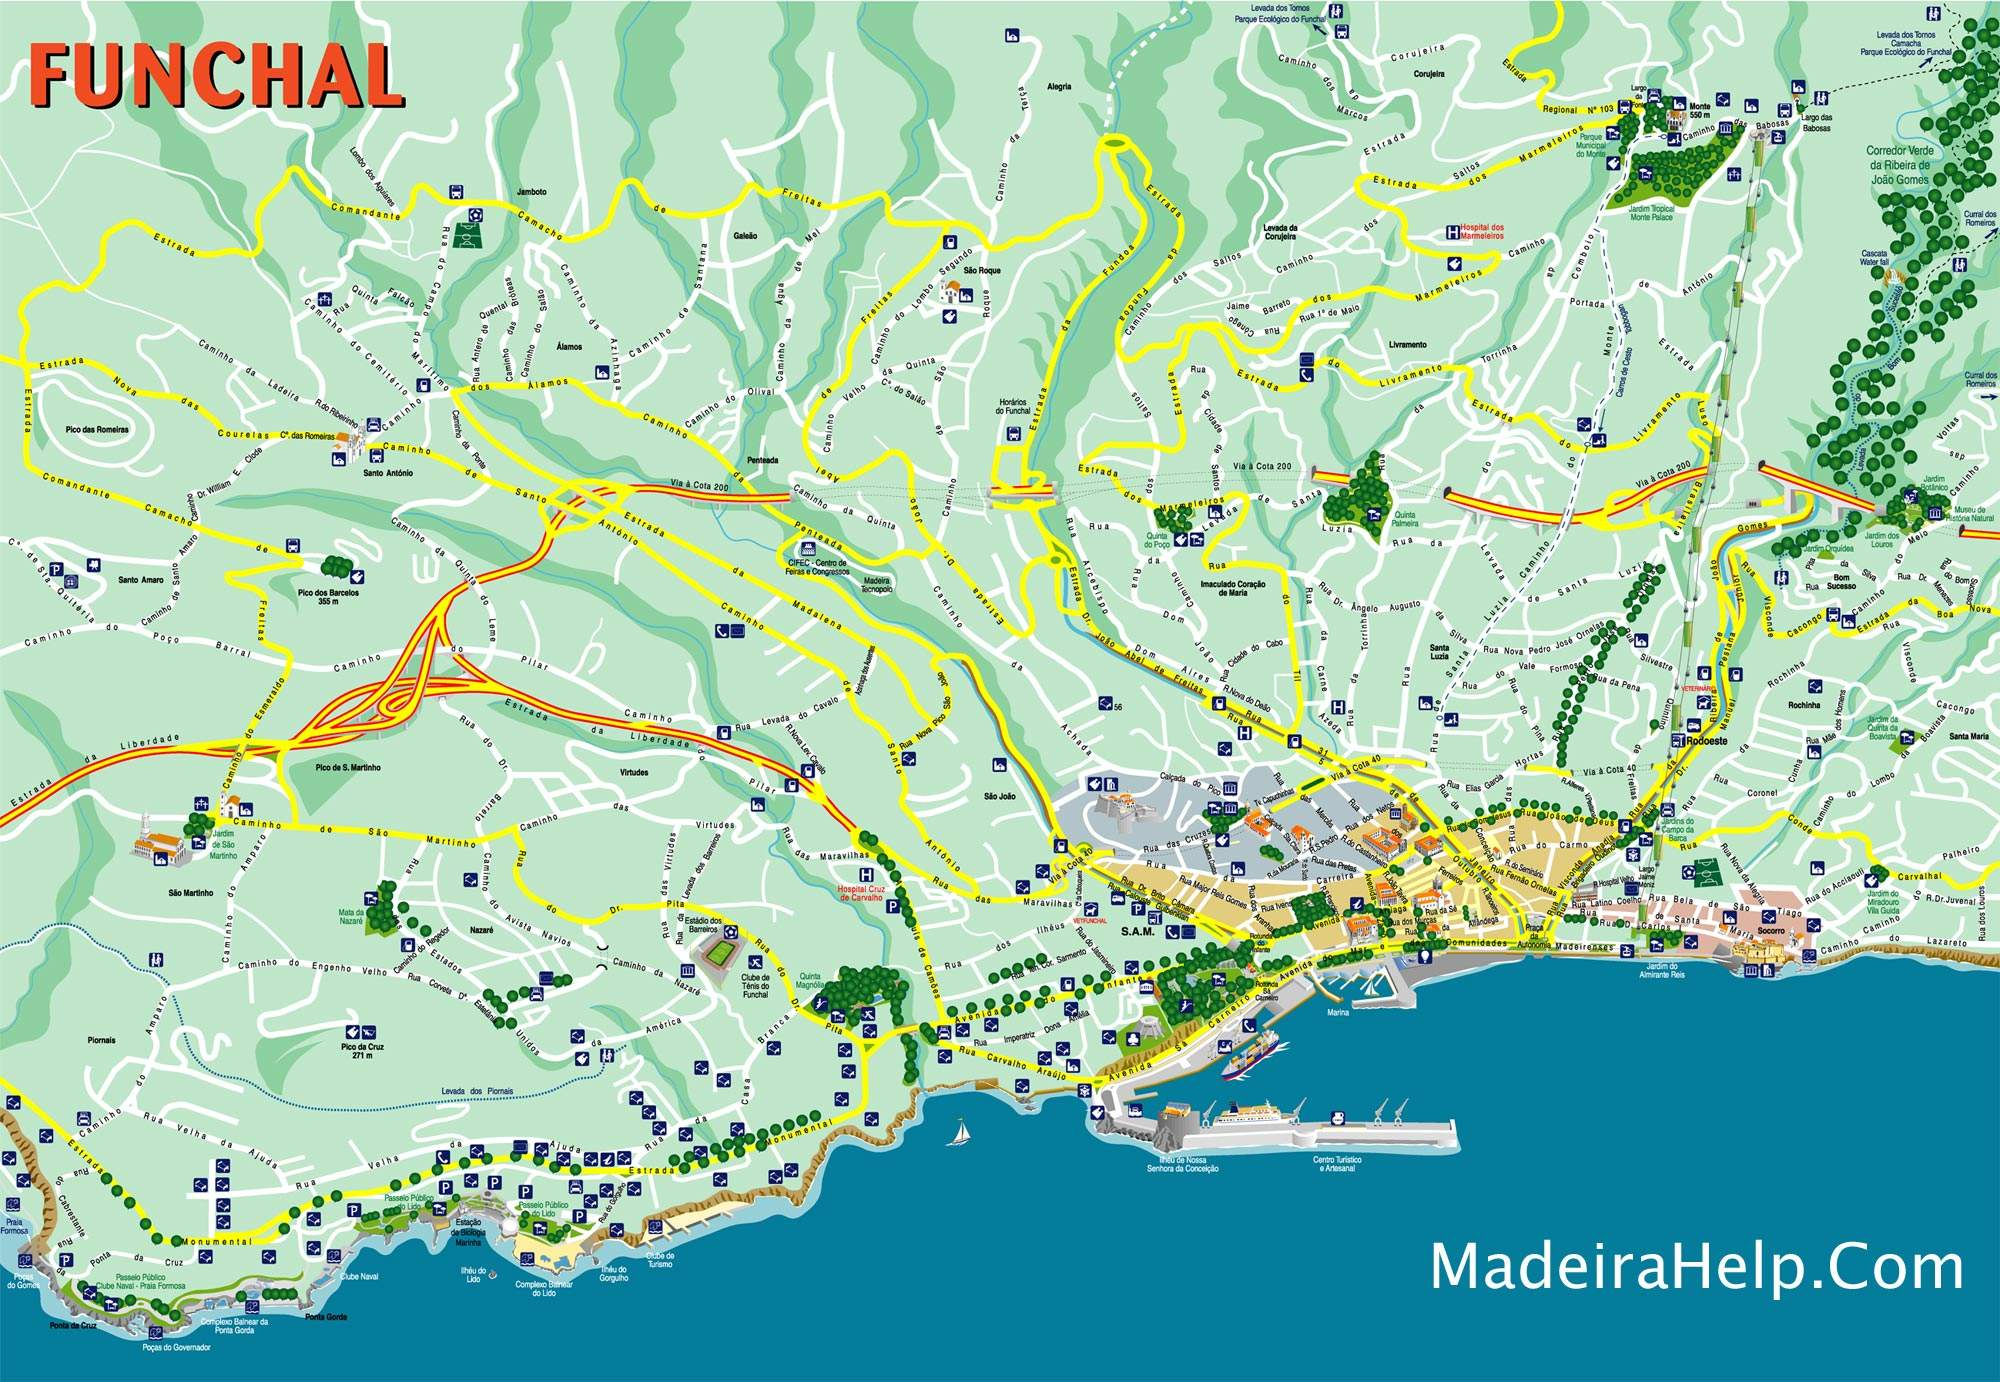 Large Funchal Maps For Free Download And Print High